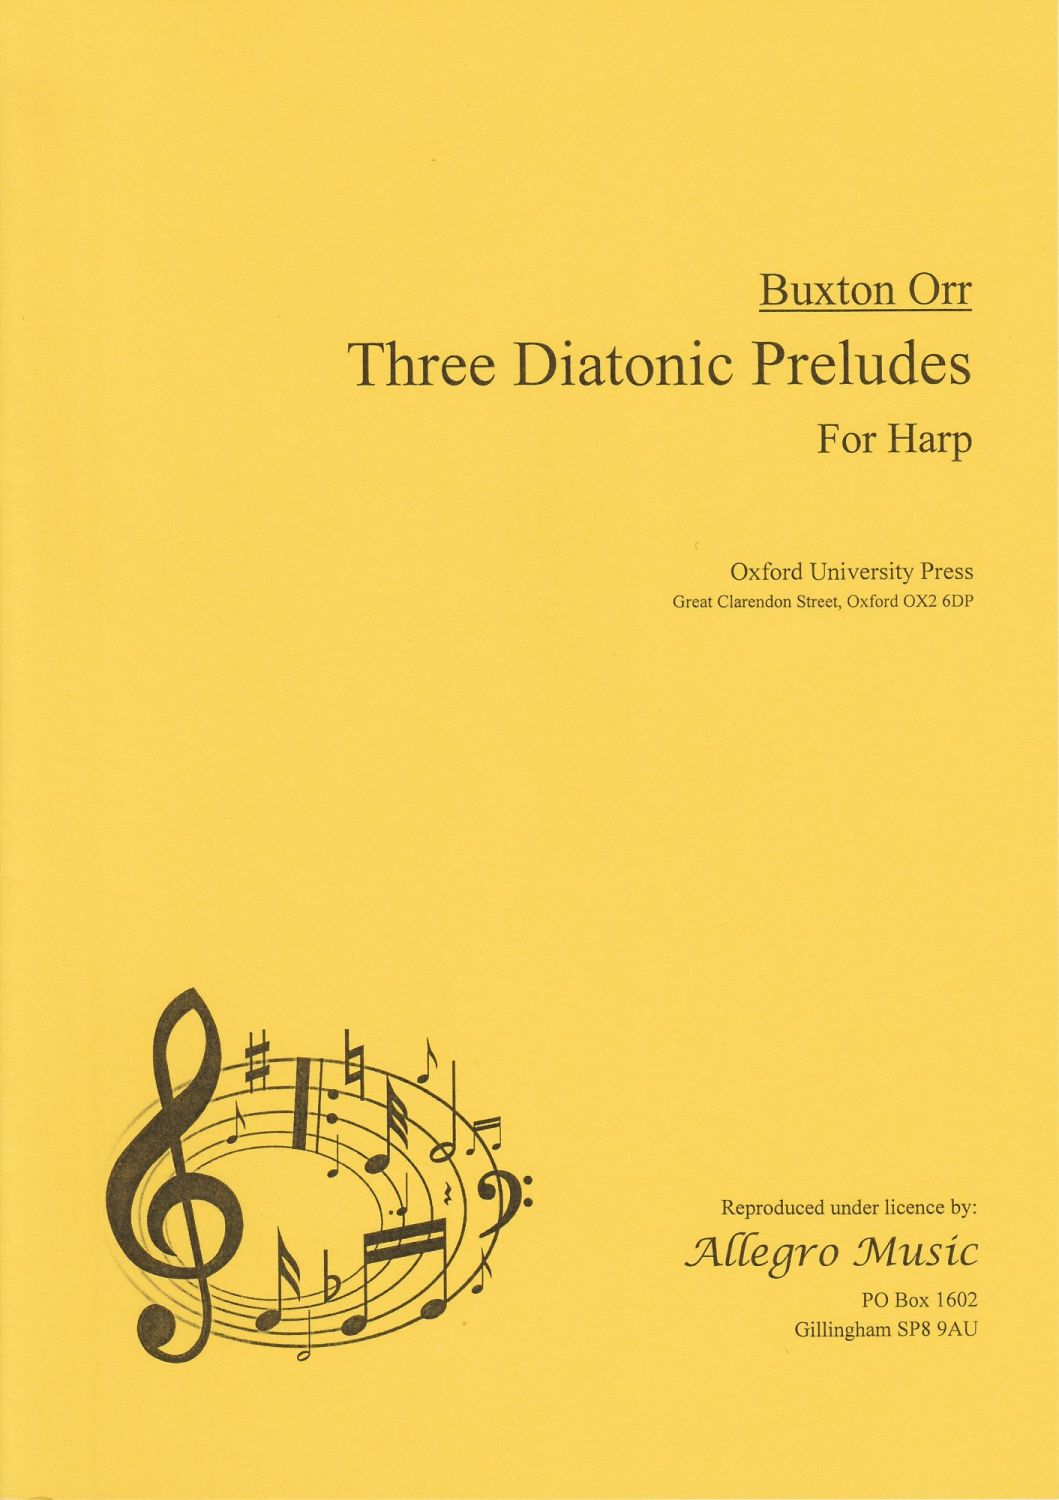 Three Diatonic Preludes for Harp - Buxton Orr